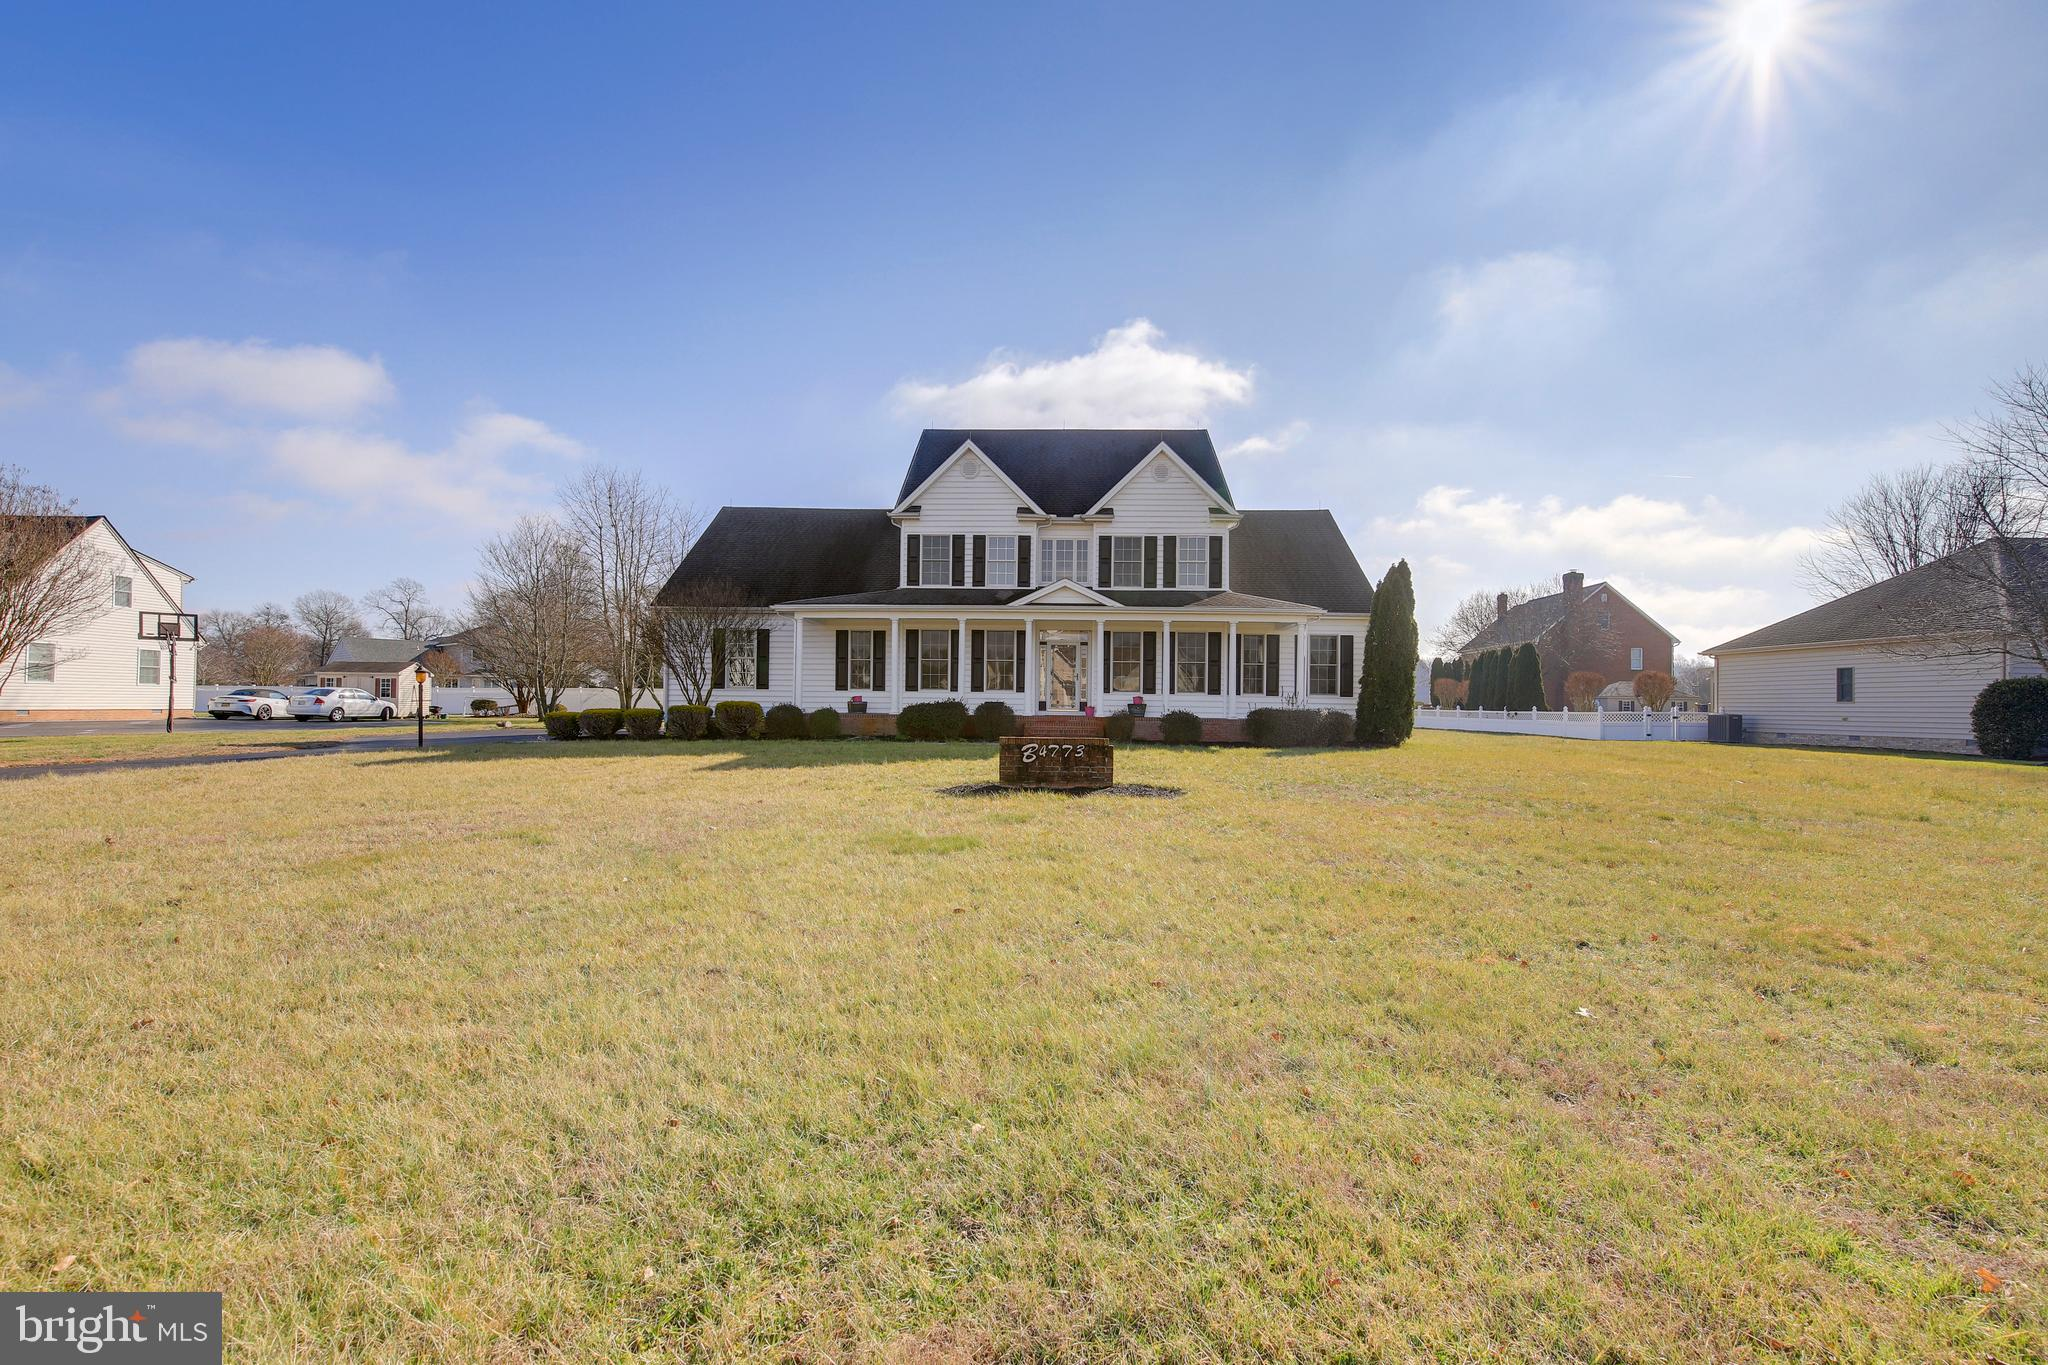 Come see this breathtakingly beautiful 3,800 sq. Ft. Masterpiece of a home situated on a well mainta